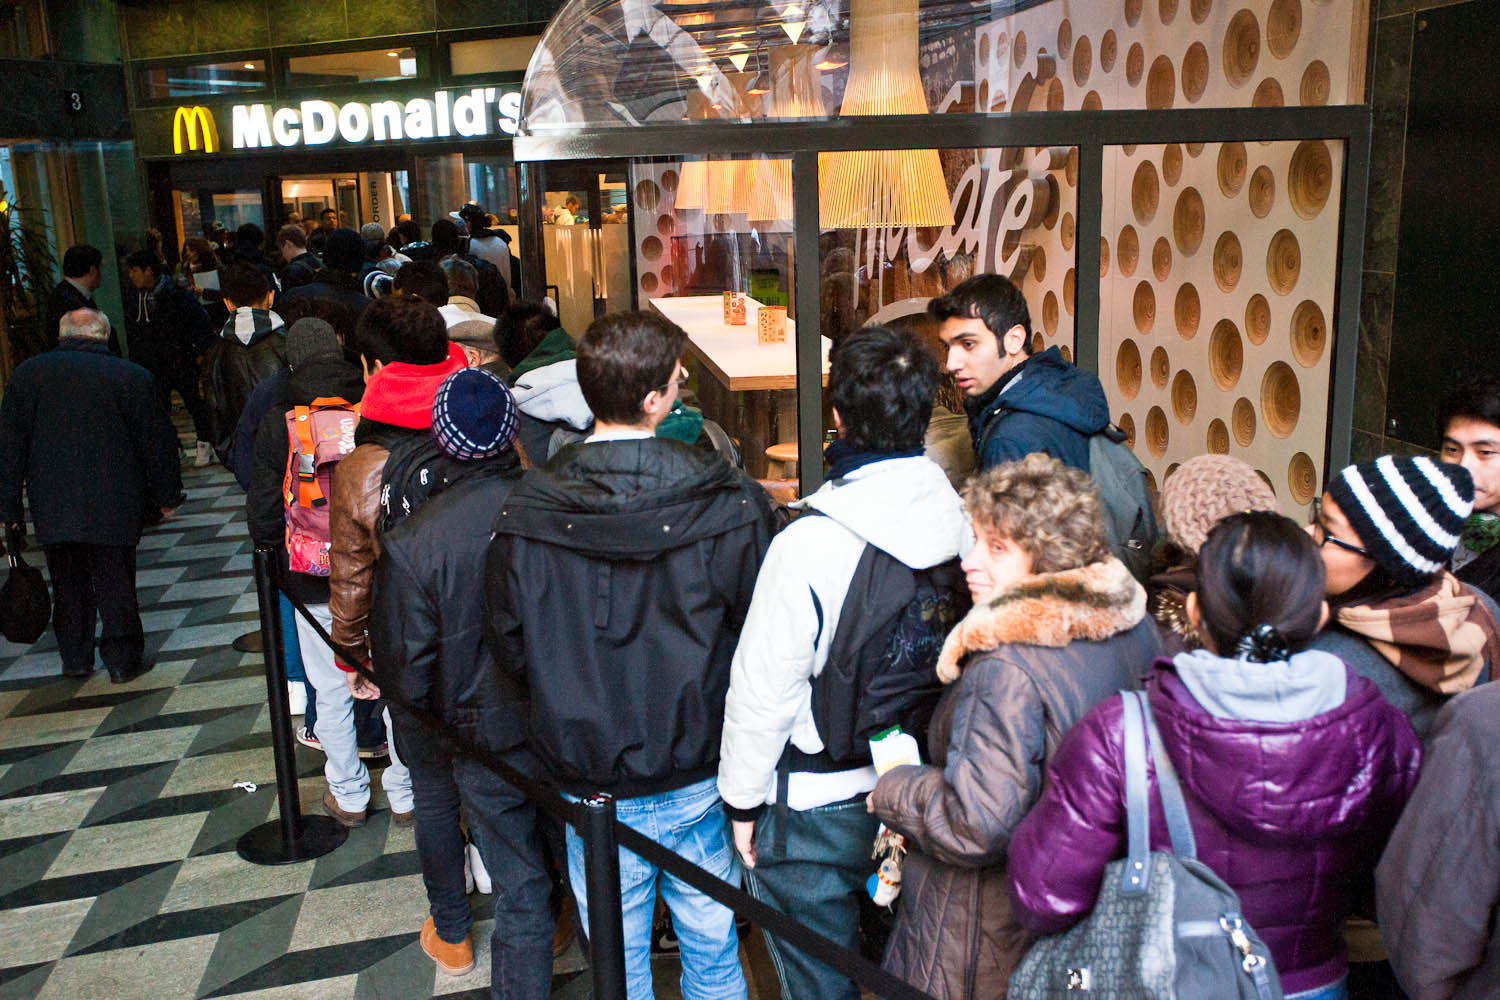 Queue at the New Restaurant McDonalds ''Galleria 2'' in Milan